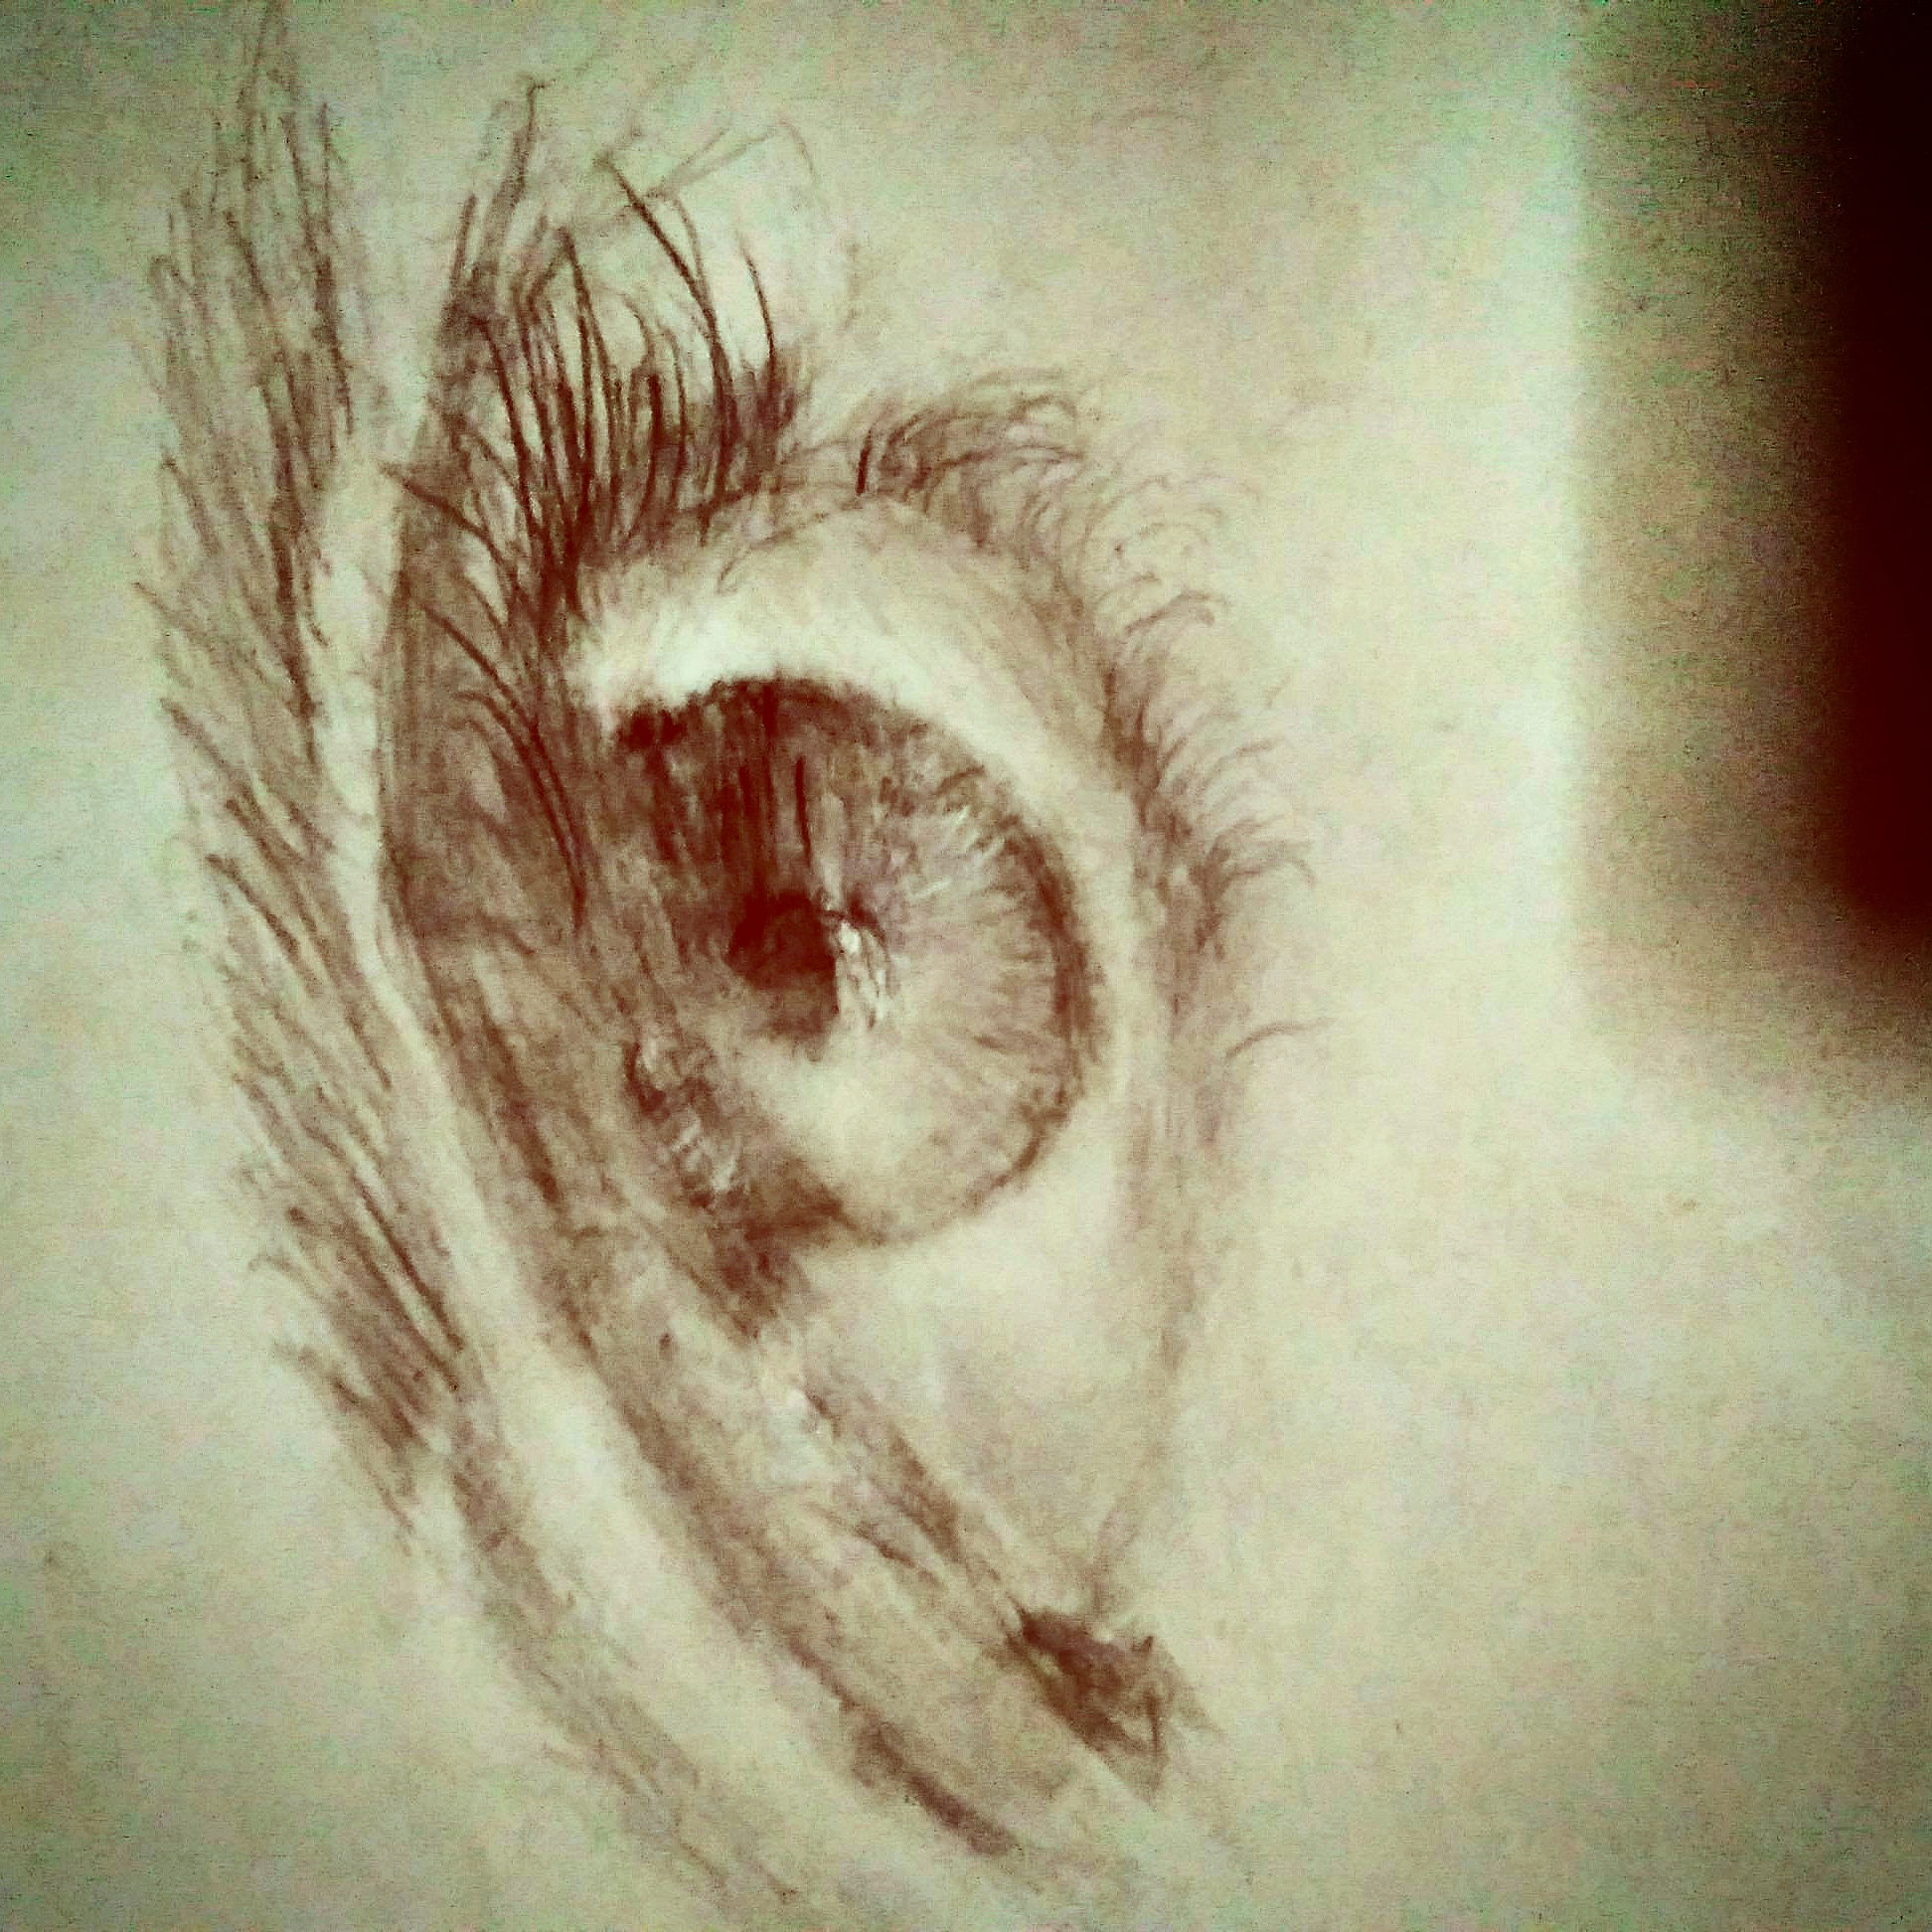 The Eye that sees all